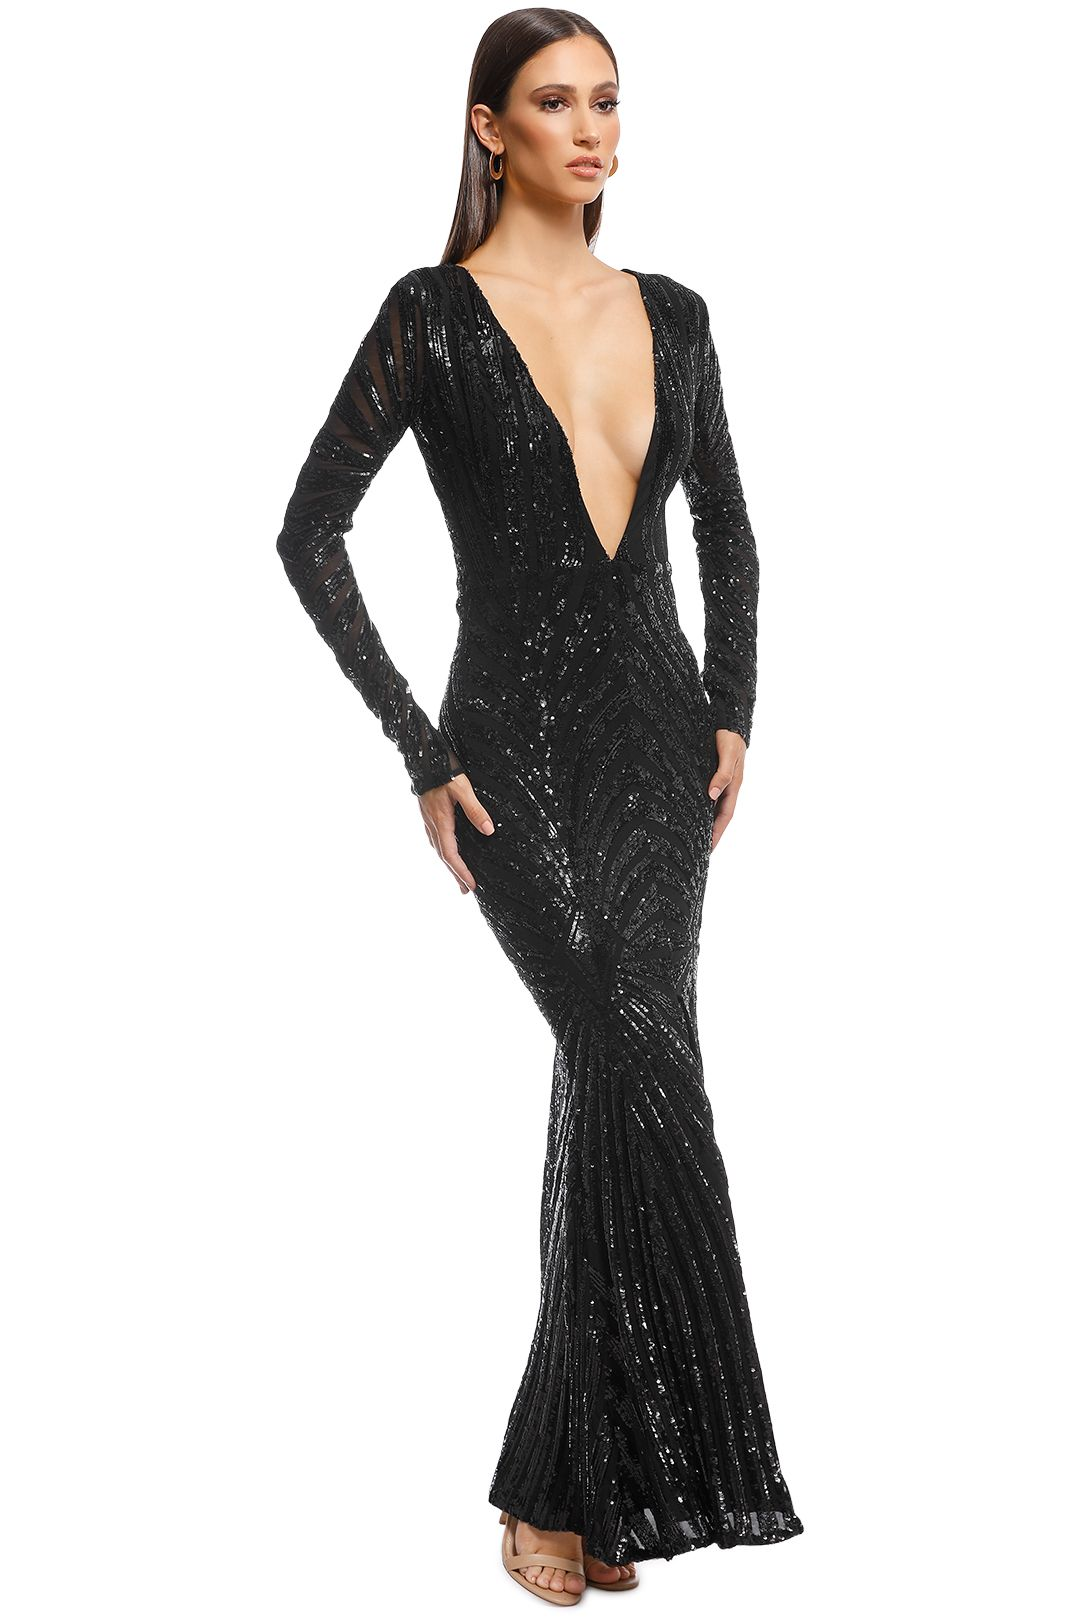 Ae'lkemi - Art Deco Sequin Gown - Black - Side